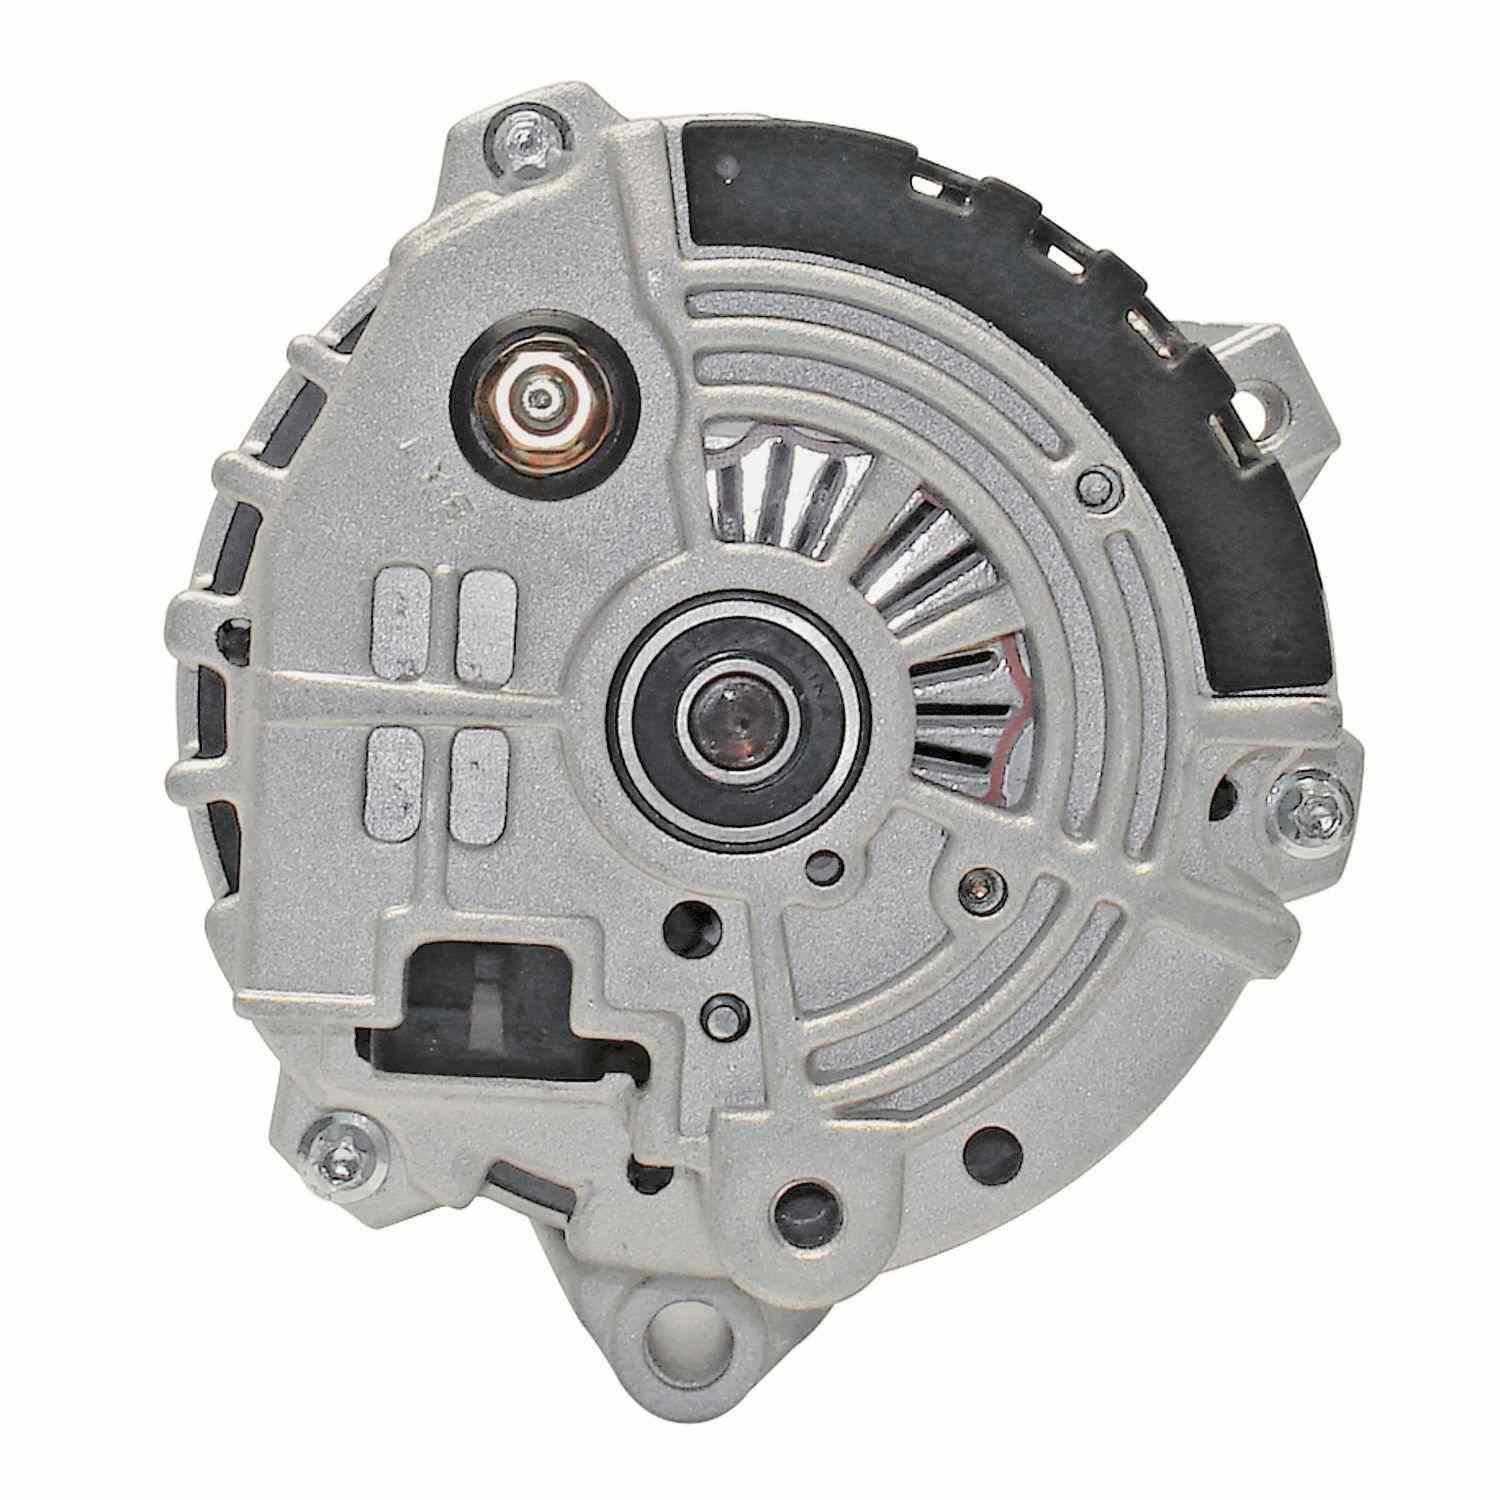 ACDELCO PROFESSIONAL - Reman Alternator - DCC 334-2365A